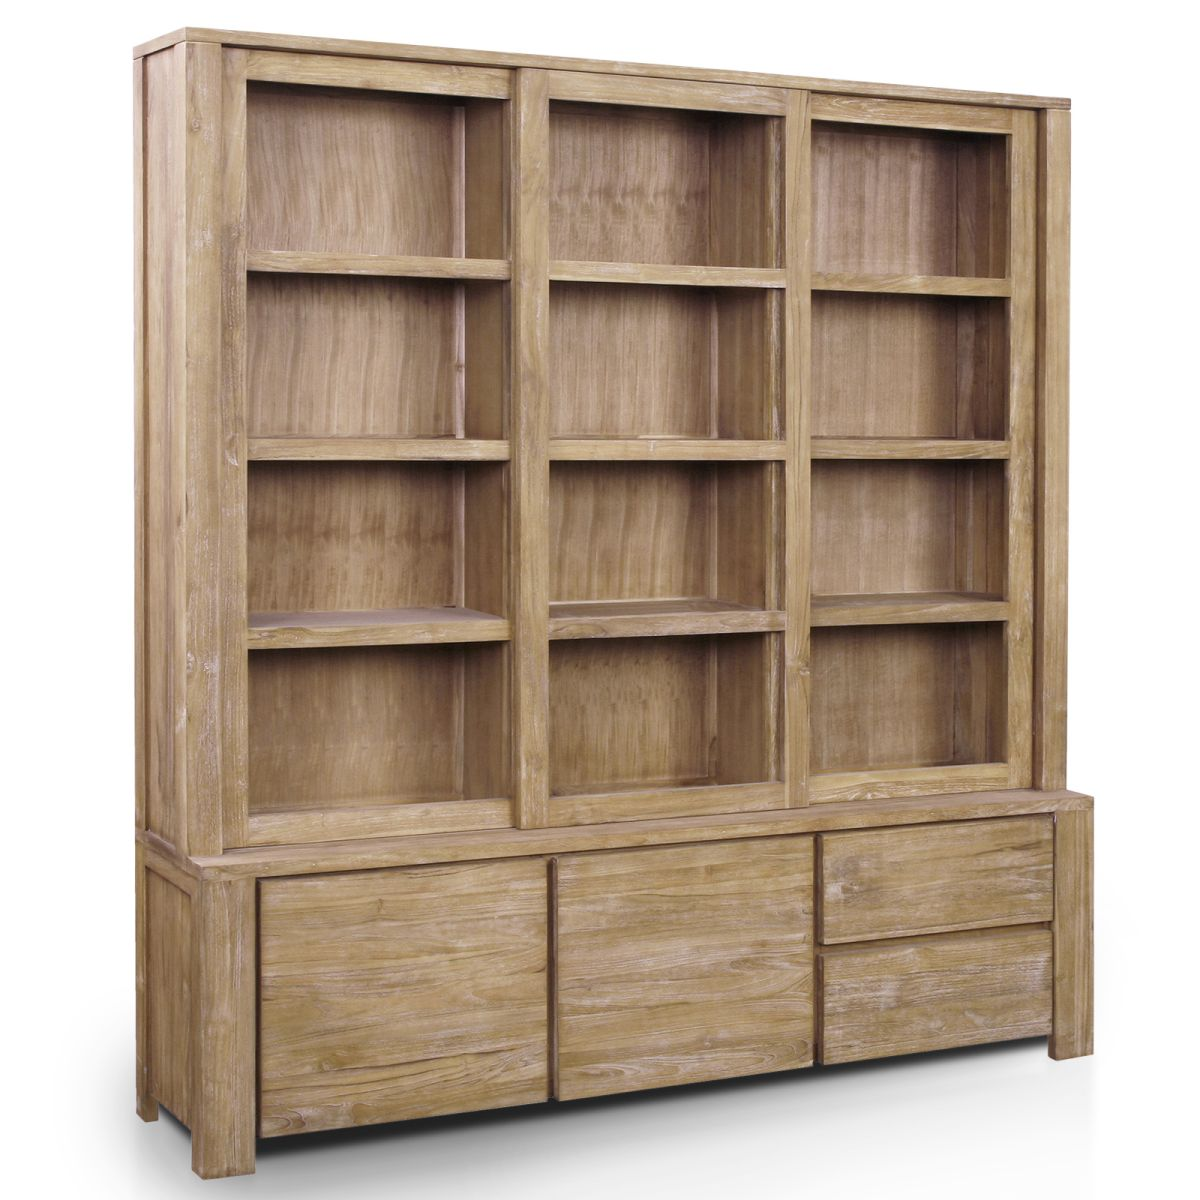 Image of: Original Bookcase With Glass Doors